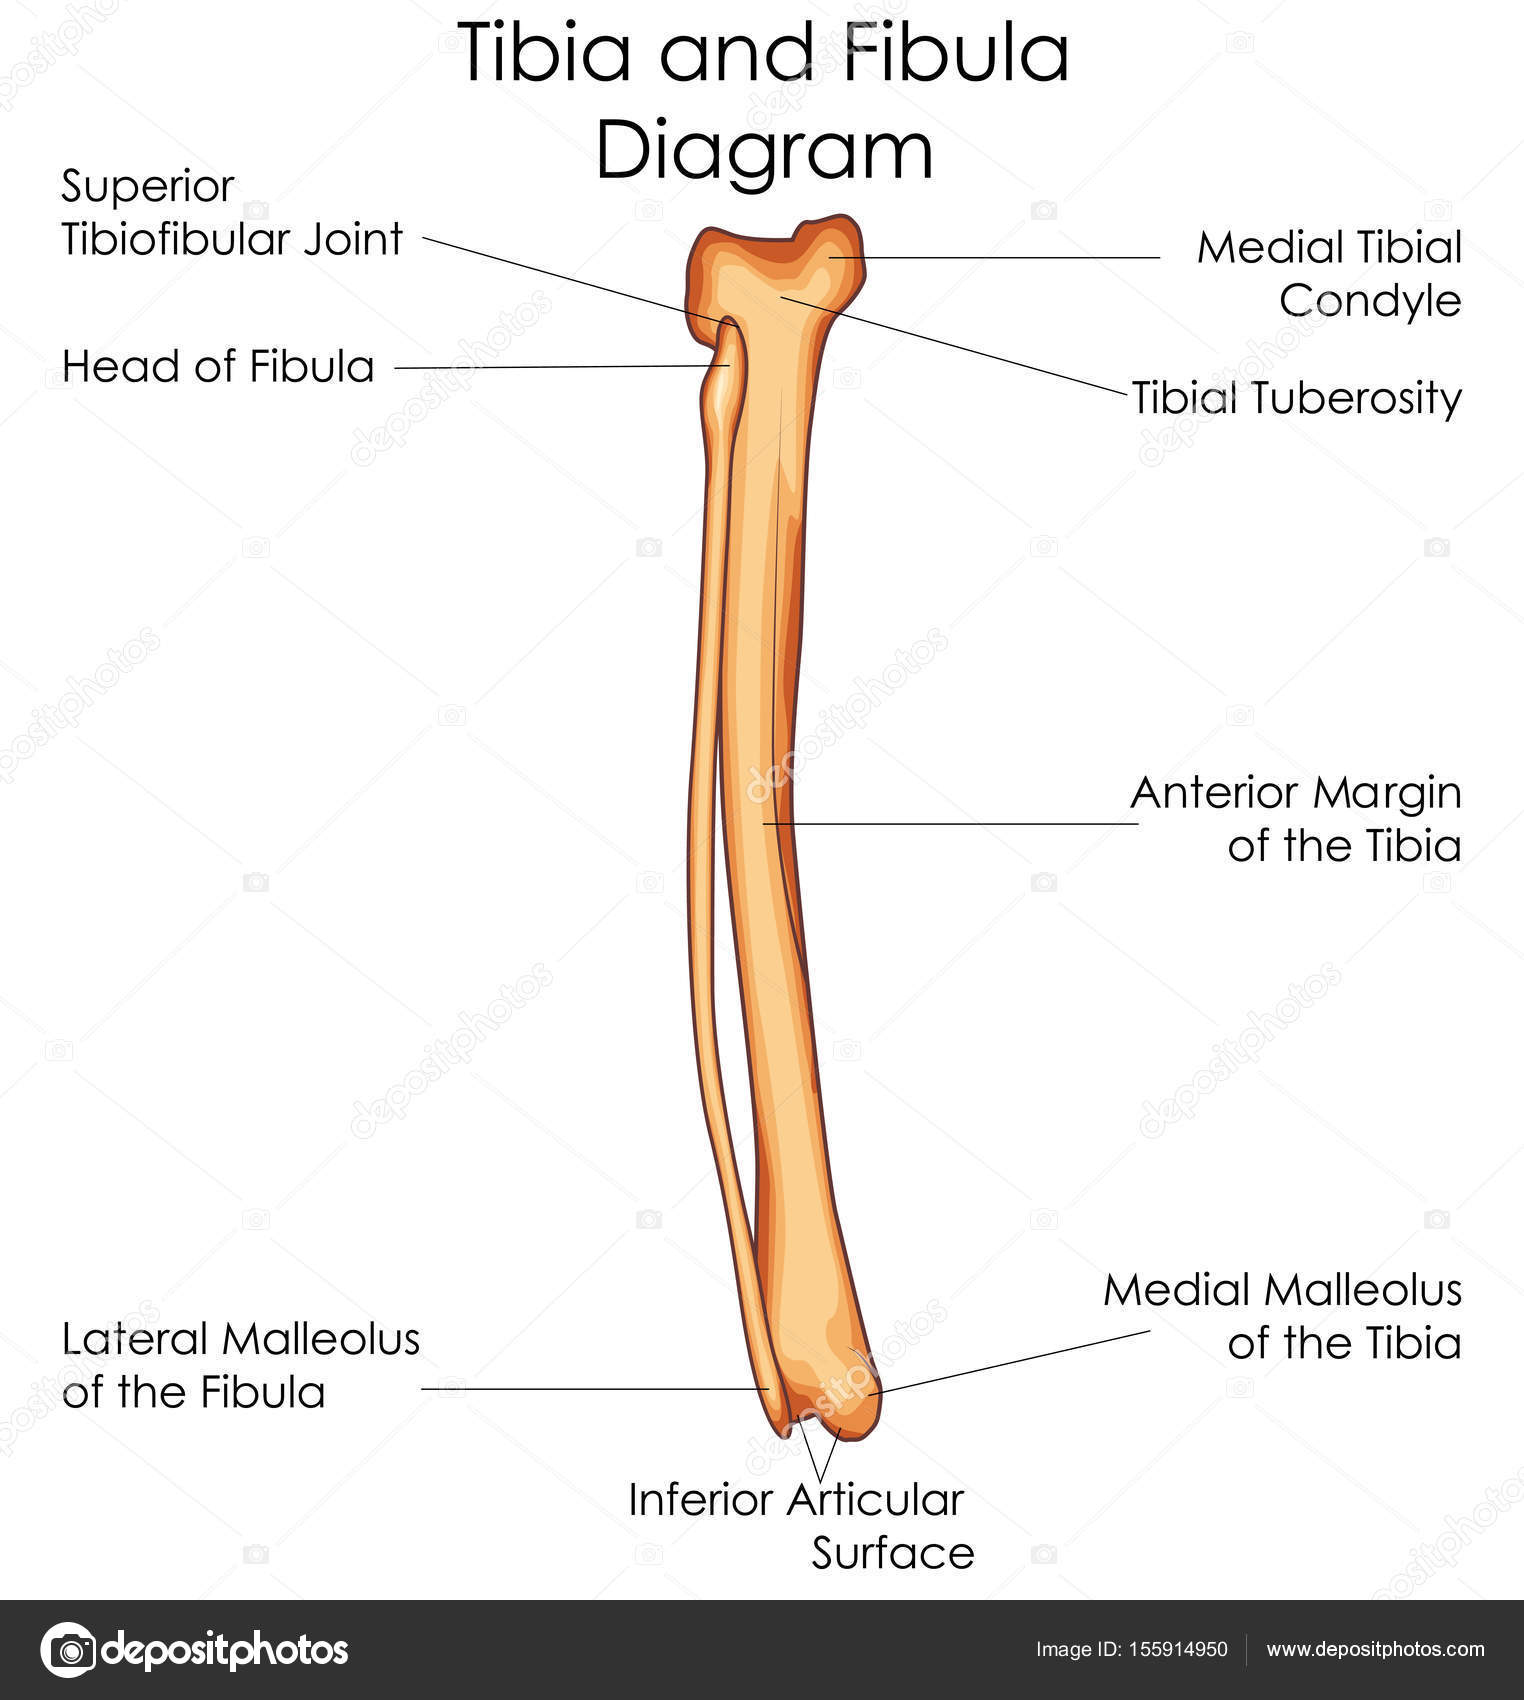 medical education chart of biology for tibia and fibula diagram Tibula and Fibula Blank Diagram medical education chart of biology for tibia and fibula diagram \u2014 stock vector